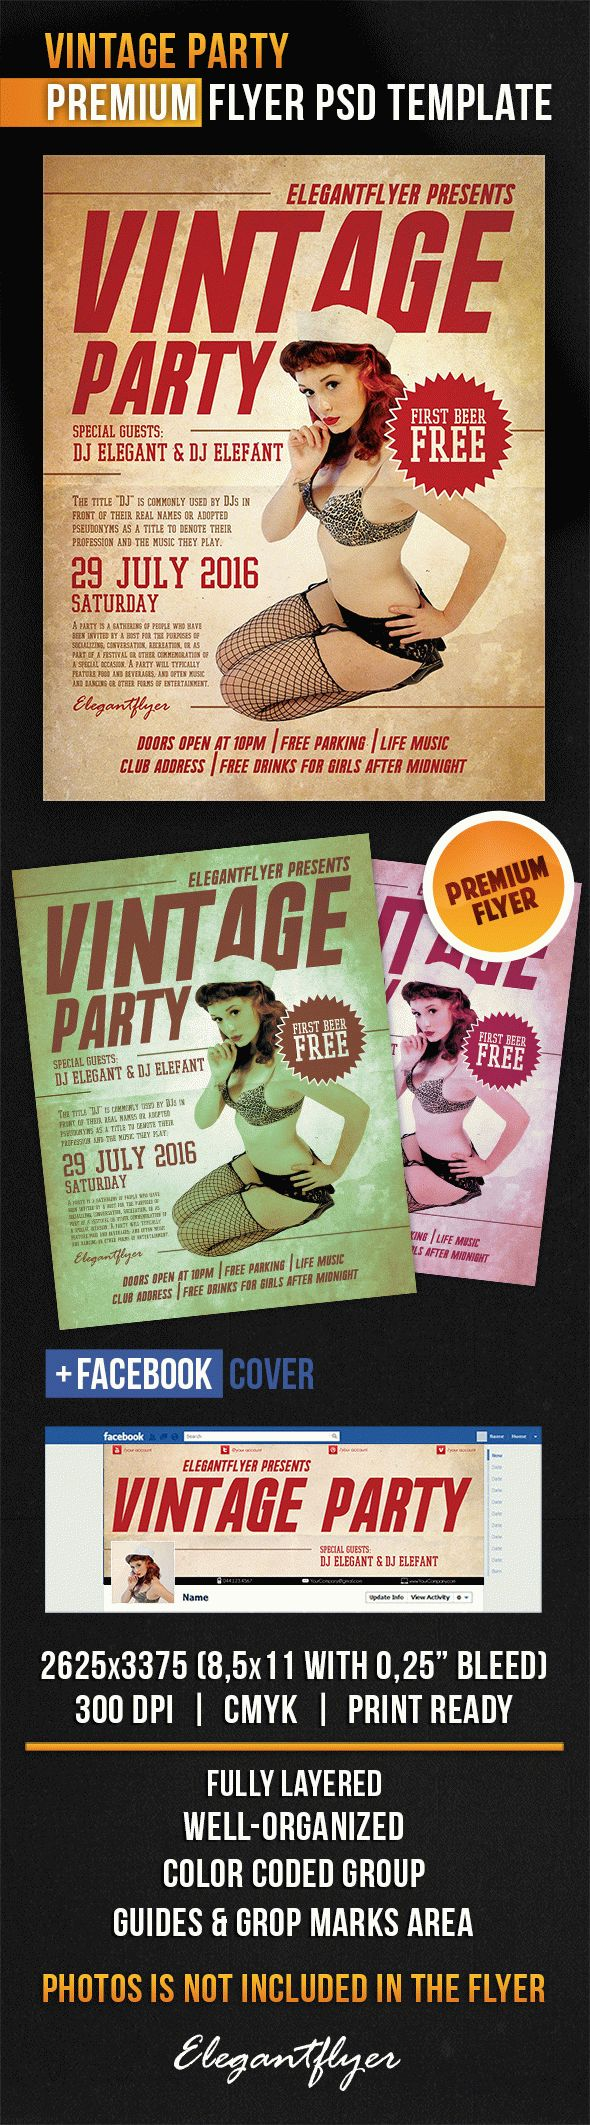 Vintage Music Party Flyer in PSD